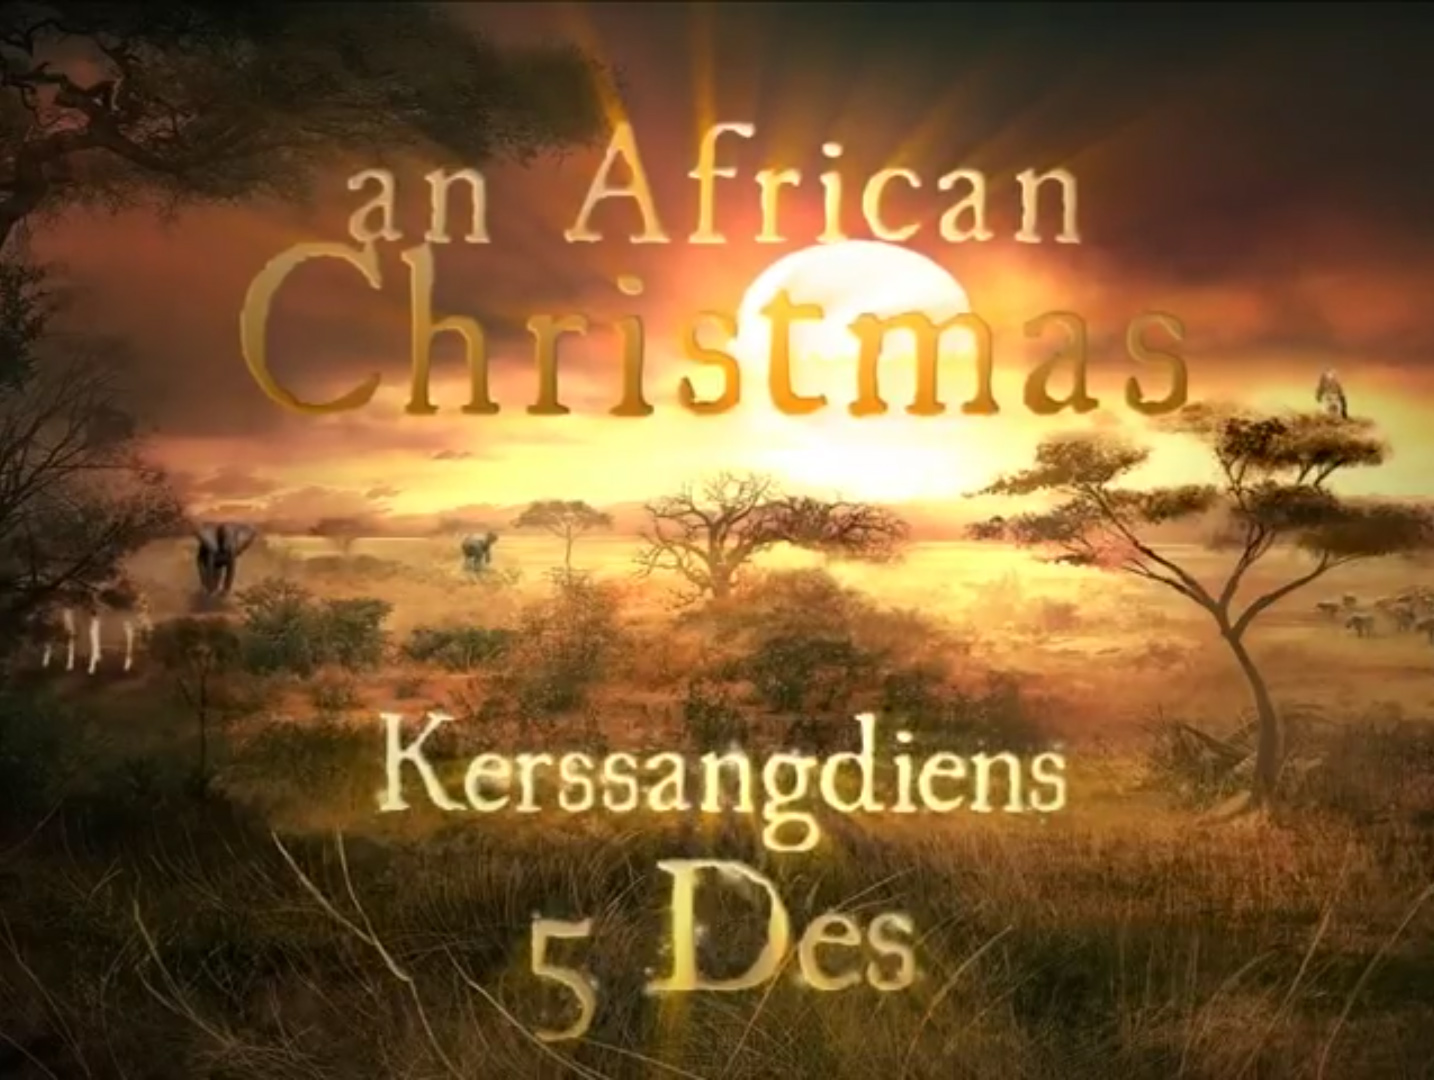 SA Congregation - African Christmas trailer